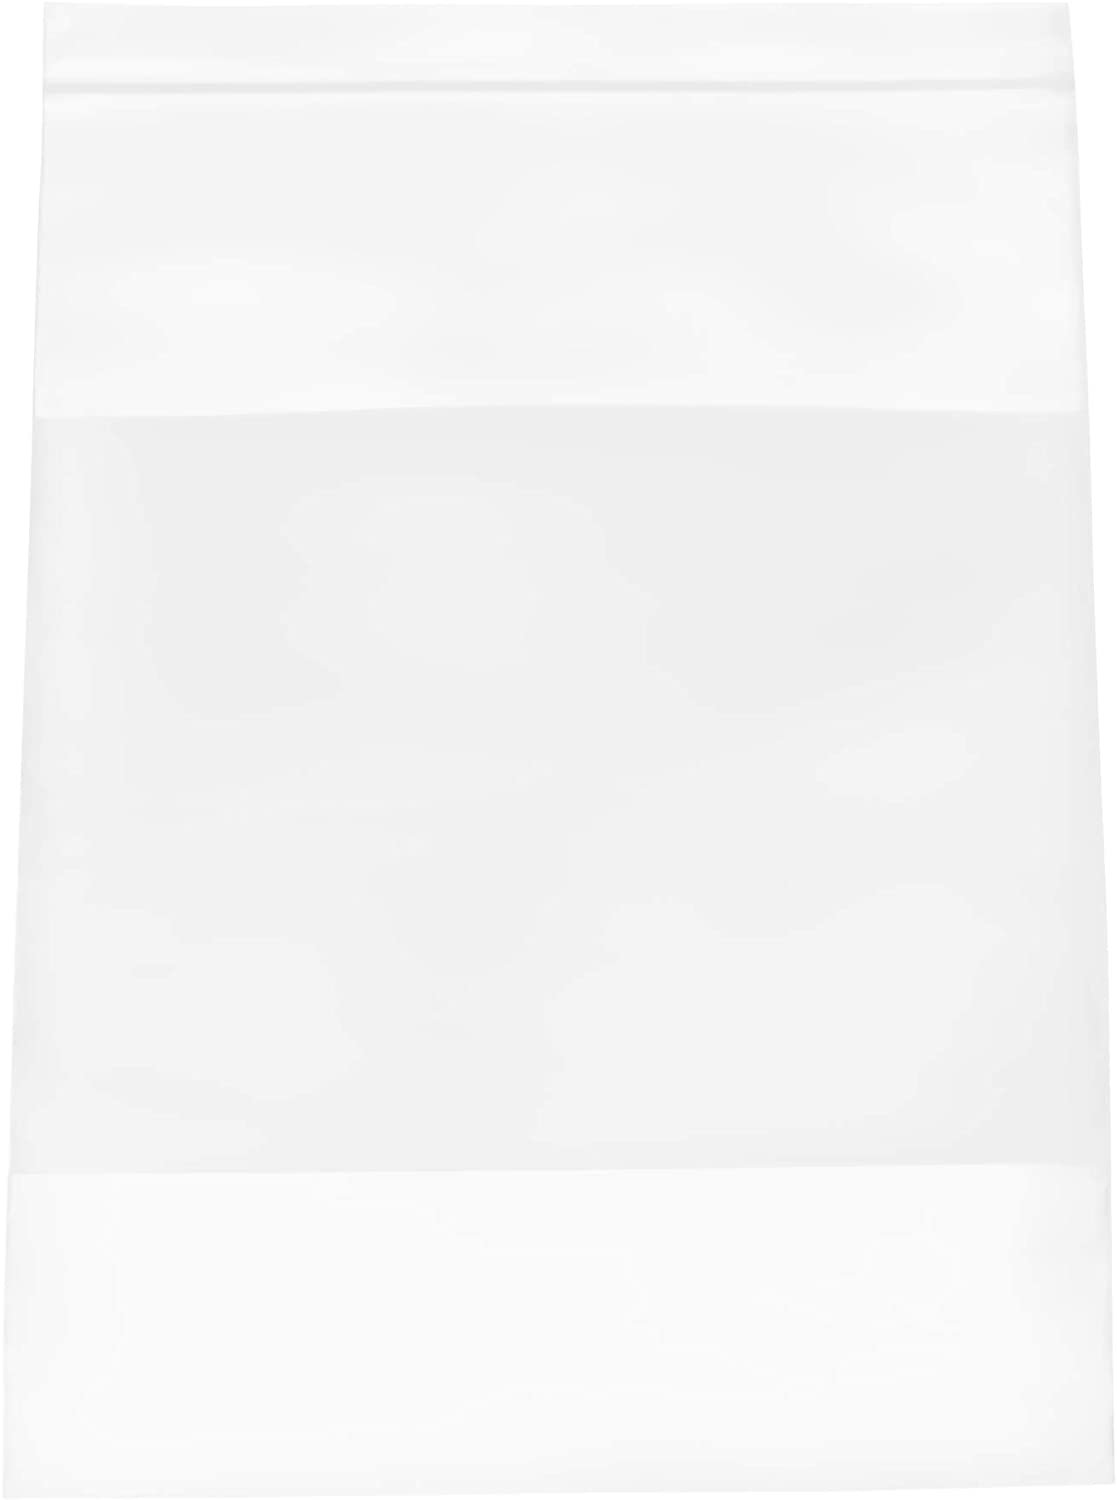 "2 Mil Ziplock Bags with White Block 8"" x 10"" Baggies Clear Plastic Storage Bags for Shipping Pack of 1000"